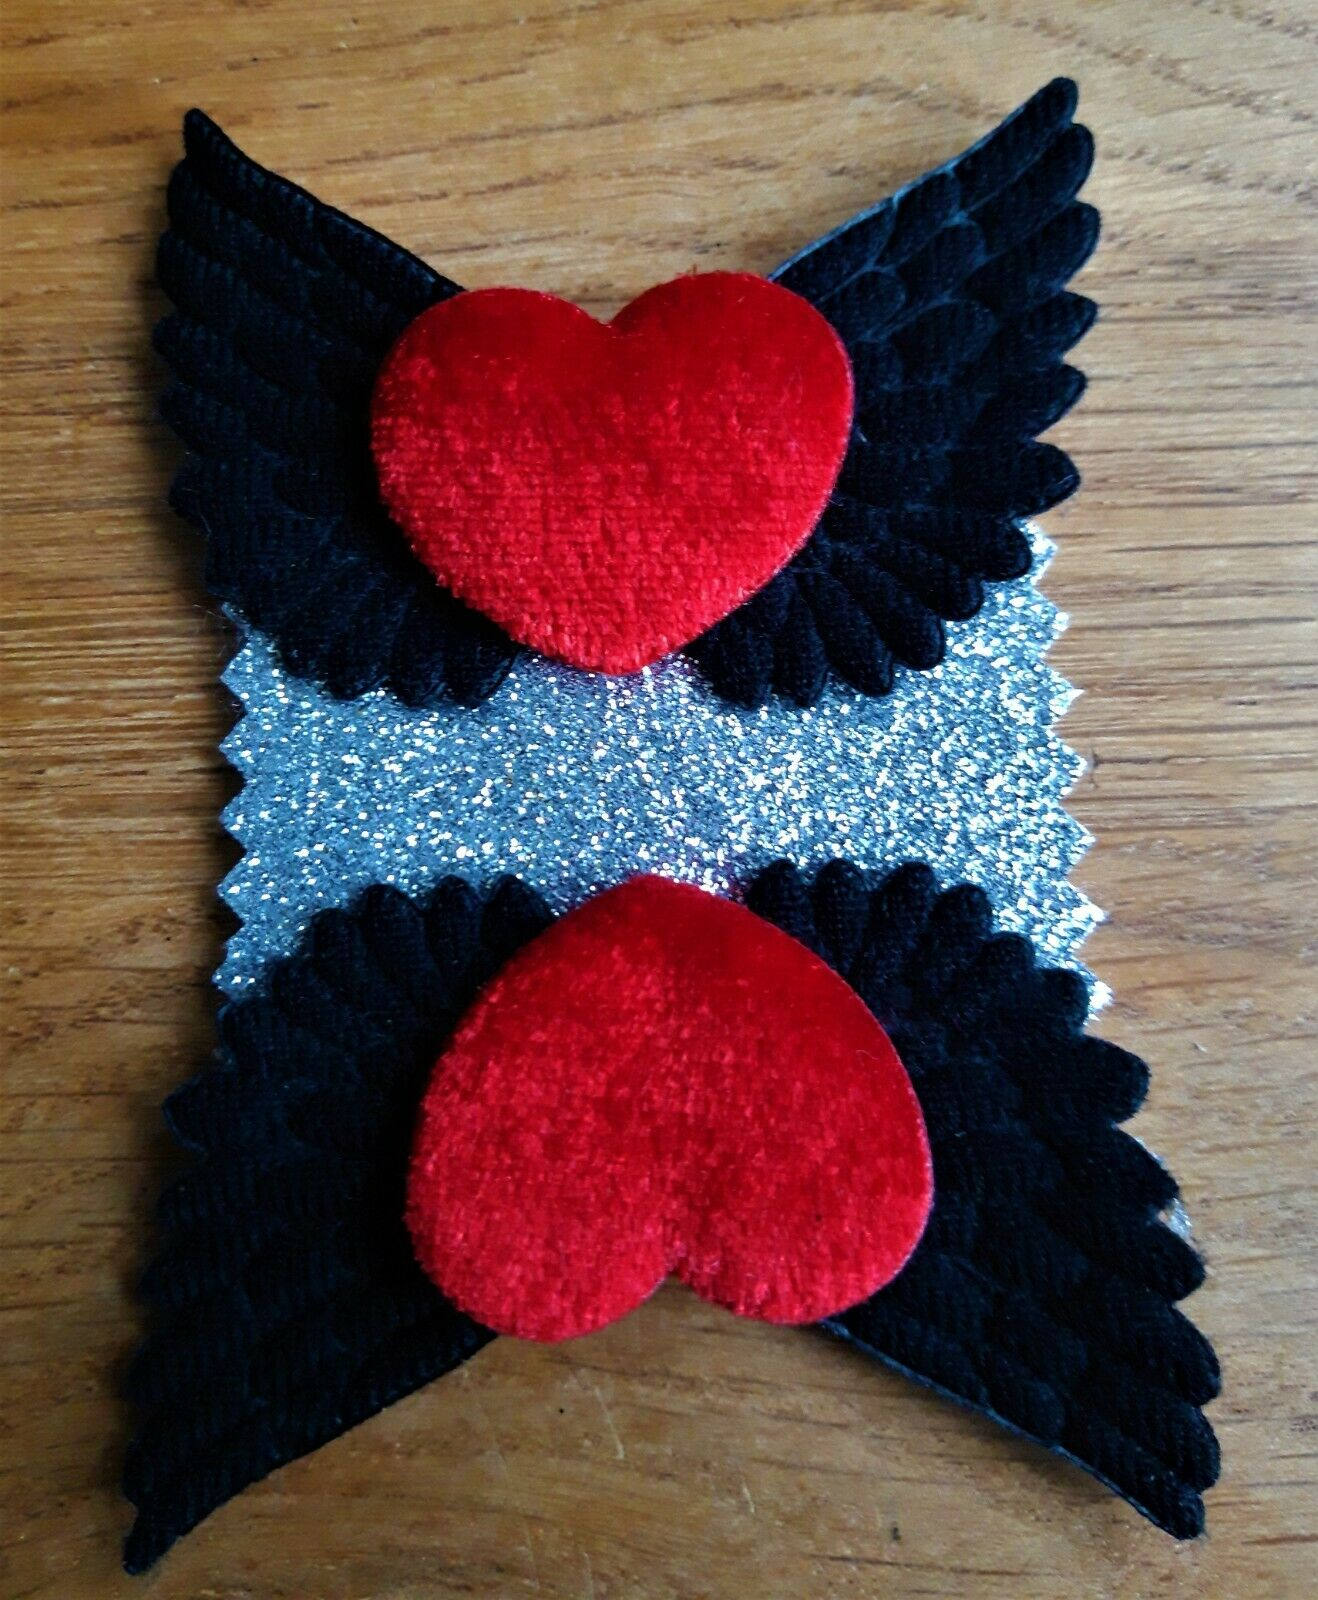 Red Velvet Hearts and Black Winged Shoe Clips - Rock'n'Roll Bride